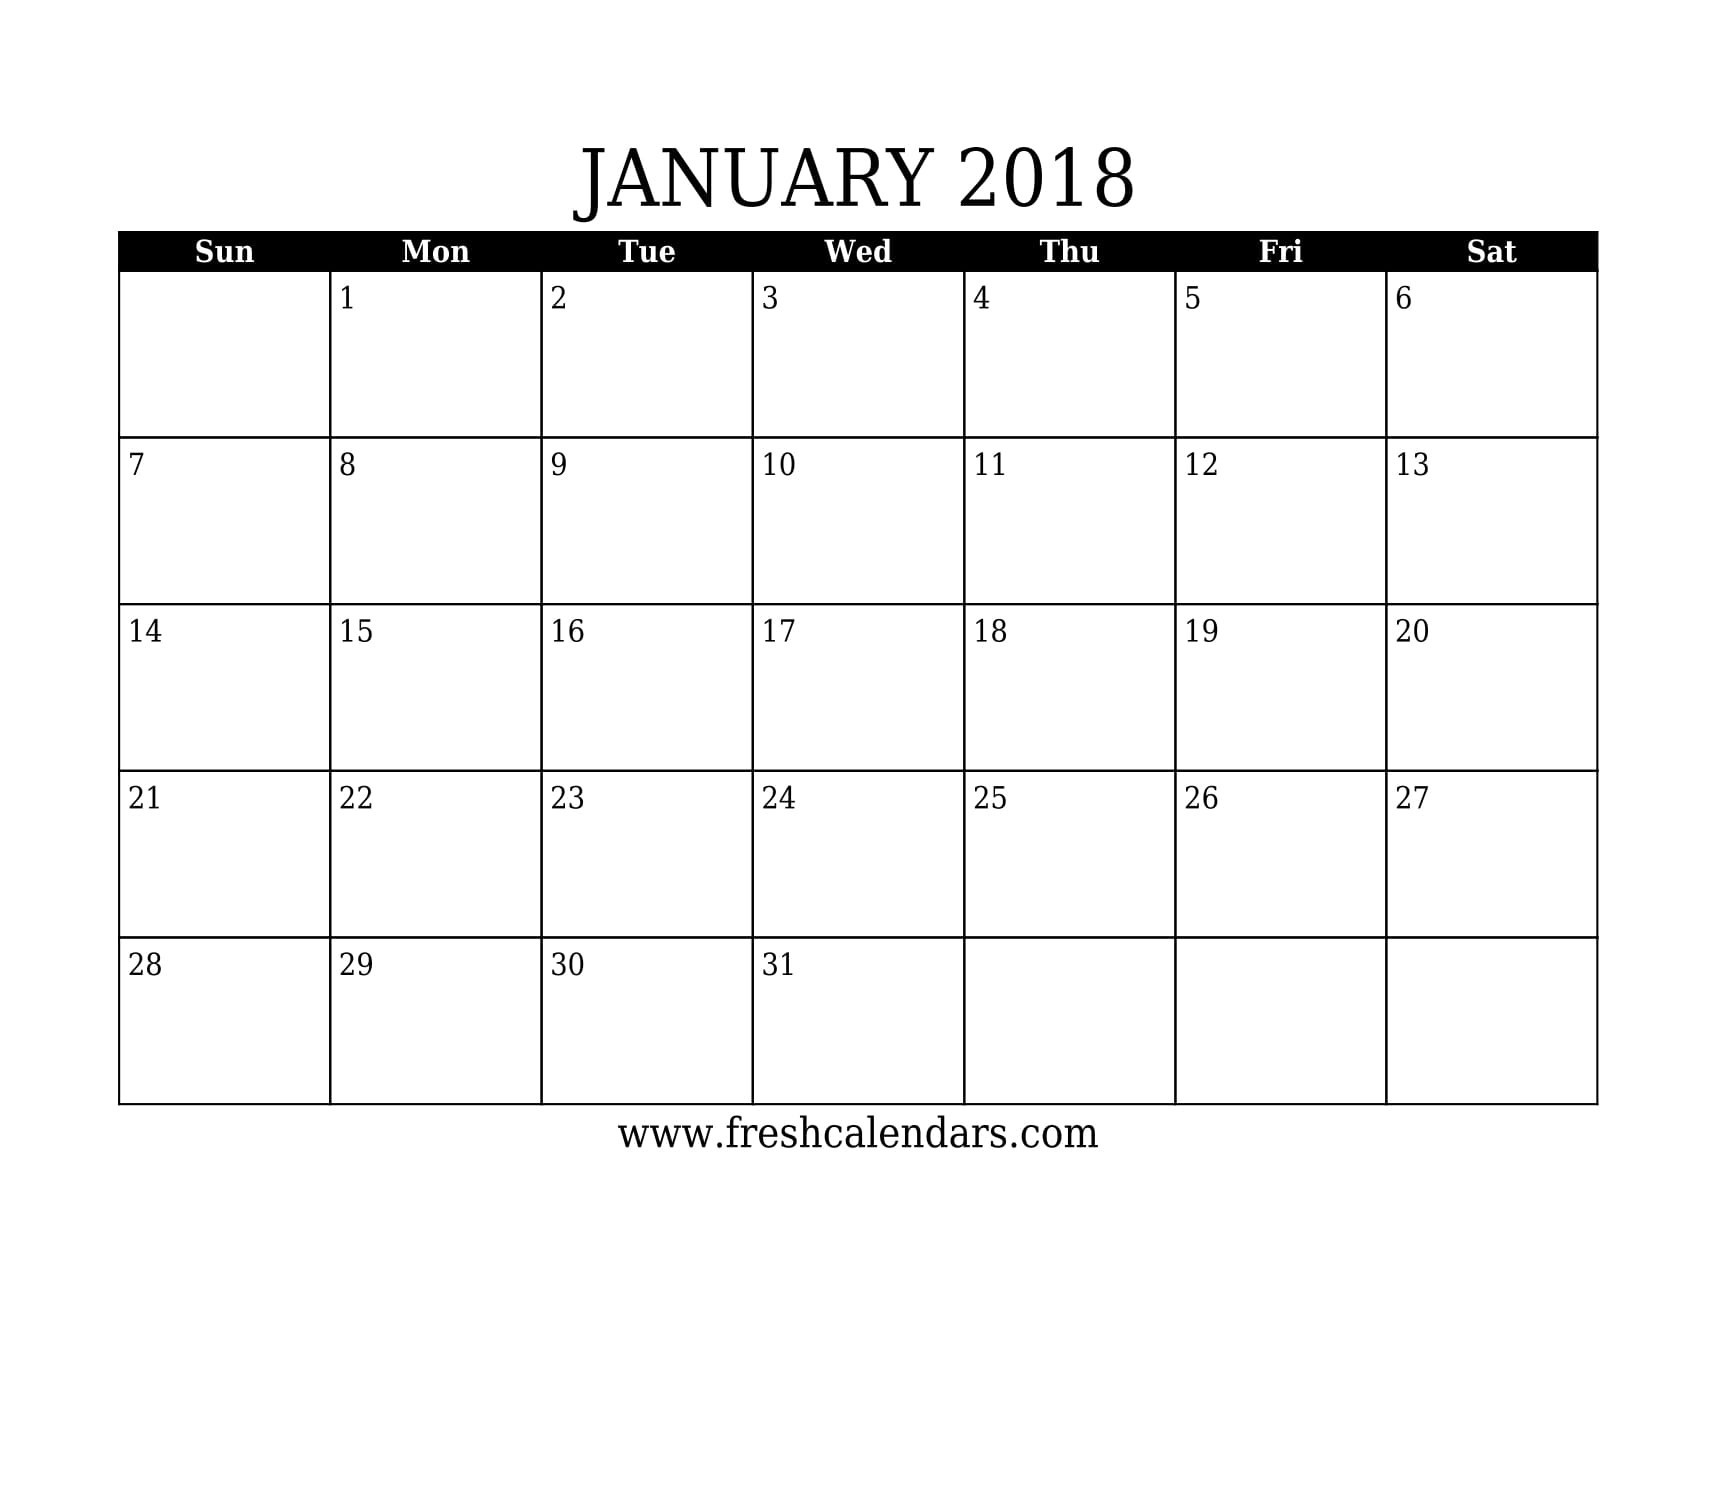 March Calendar Blank 2019 Más Actual Tips with Regard to Calendar January to March 2019 Calendar Online Of March Calendar Blank 2019 Más Caliente 2019 March for Life Info